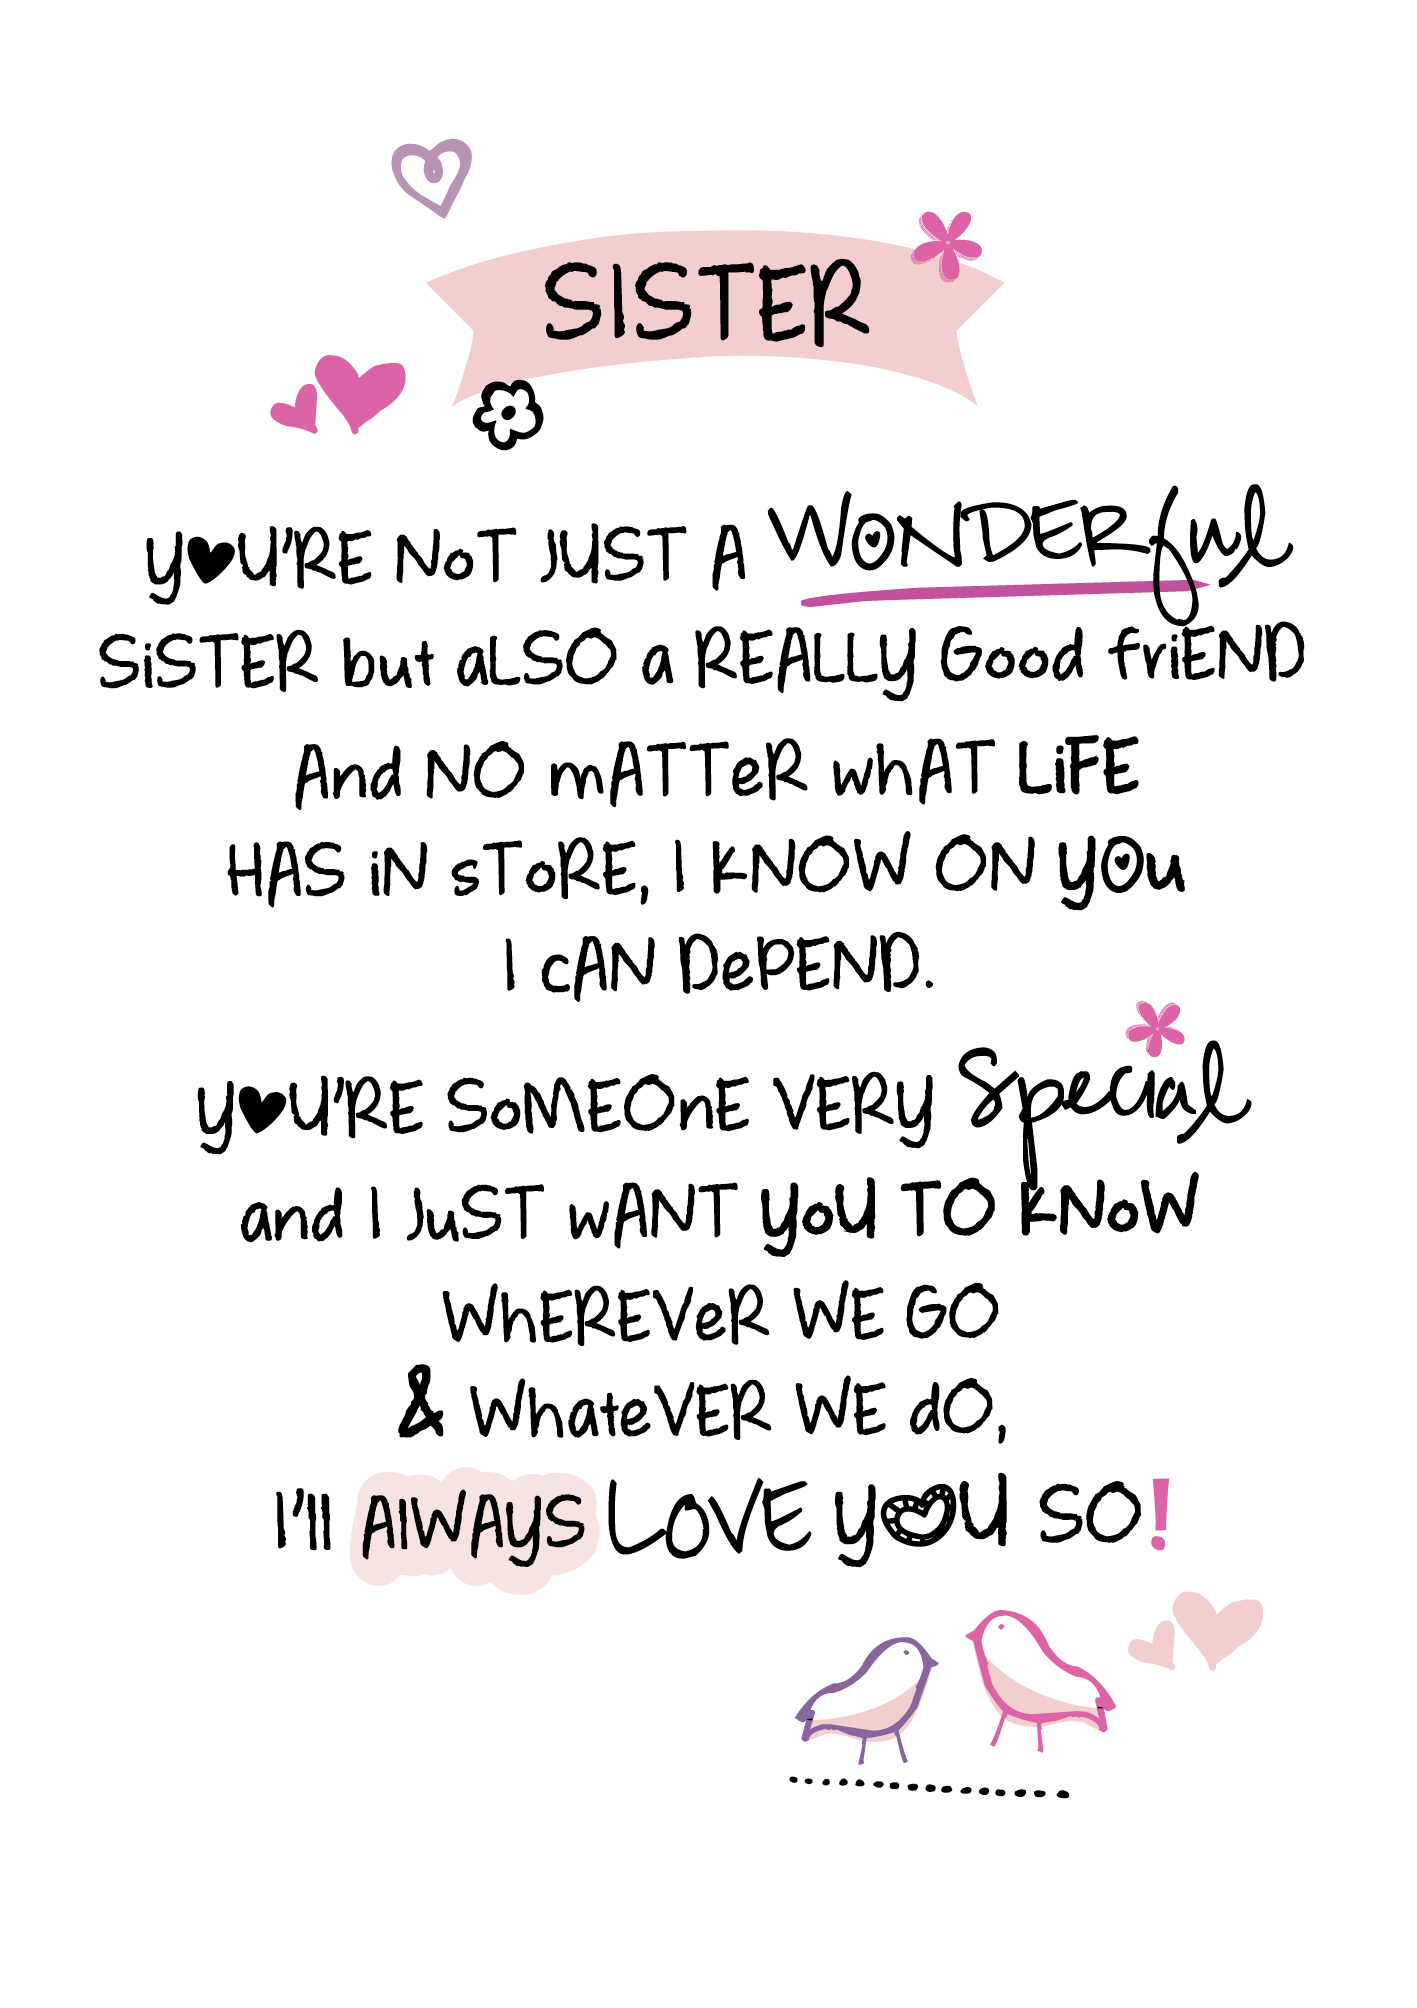 Wonderful Sister Inspired Words Greeting Card Blank Inside ...